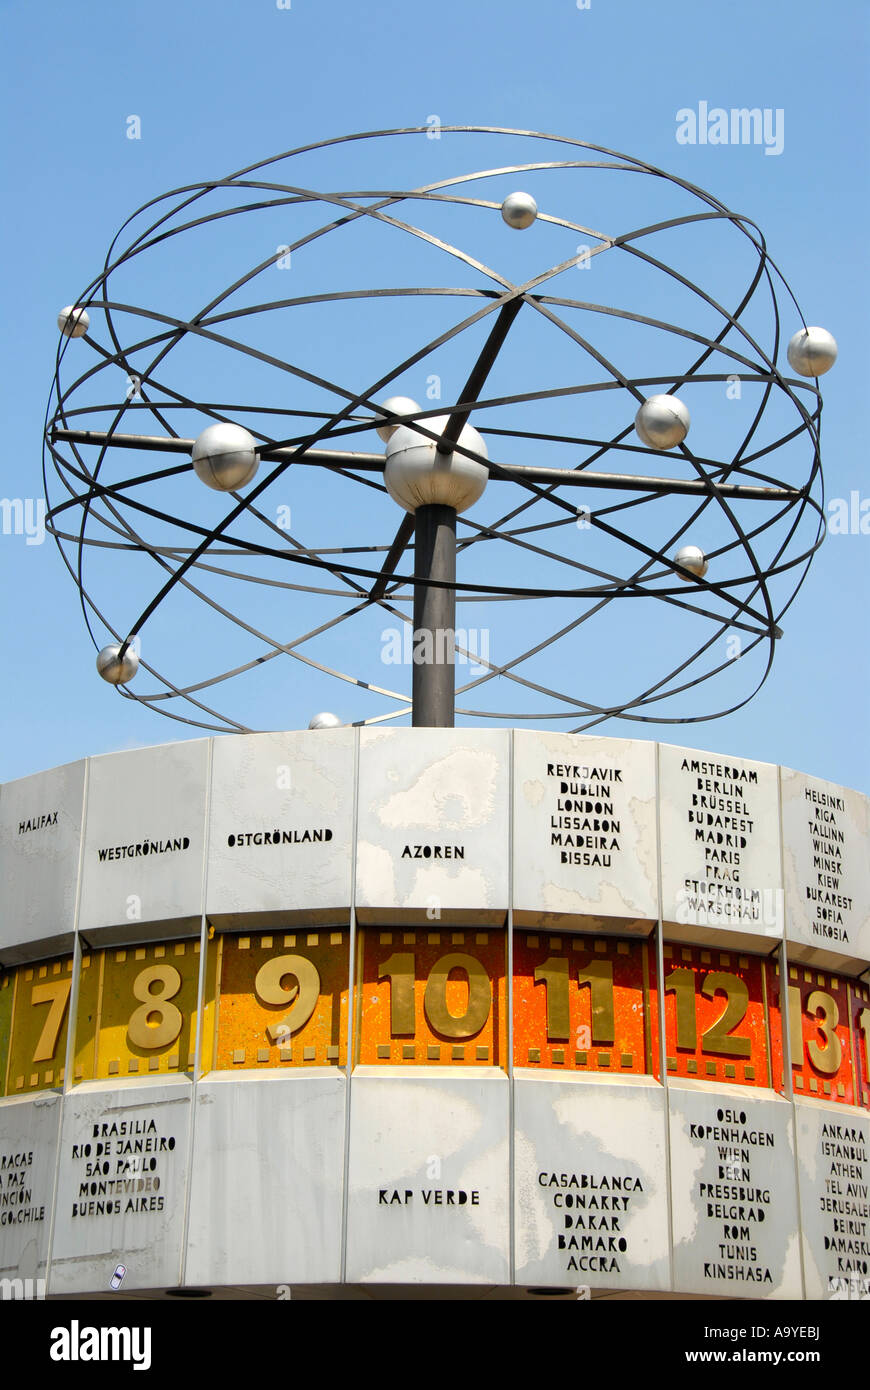 Solar system with planet orbit Weltzeituhr World Clock Alexanderplatz Berlin Germany - Stock Image